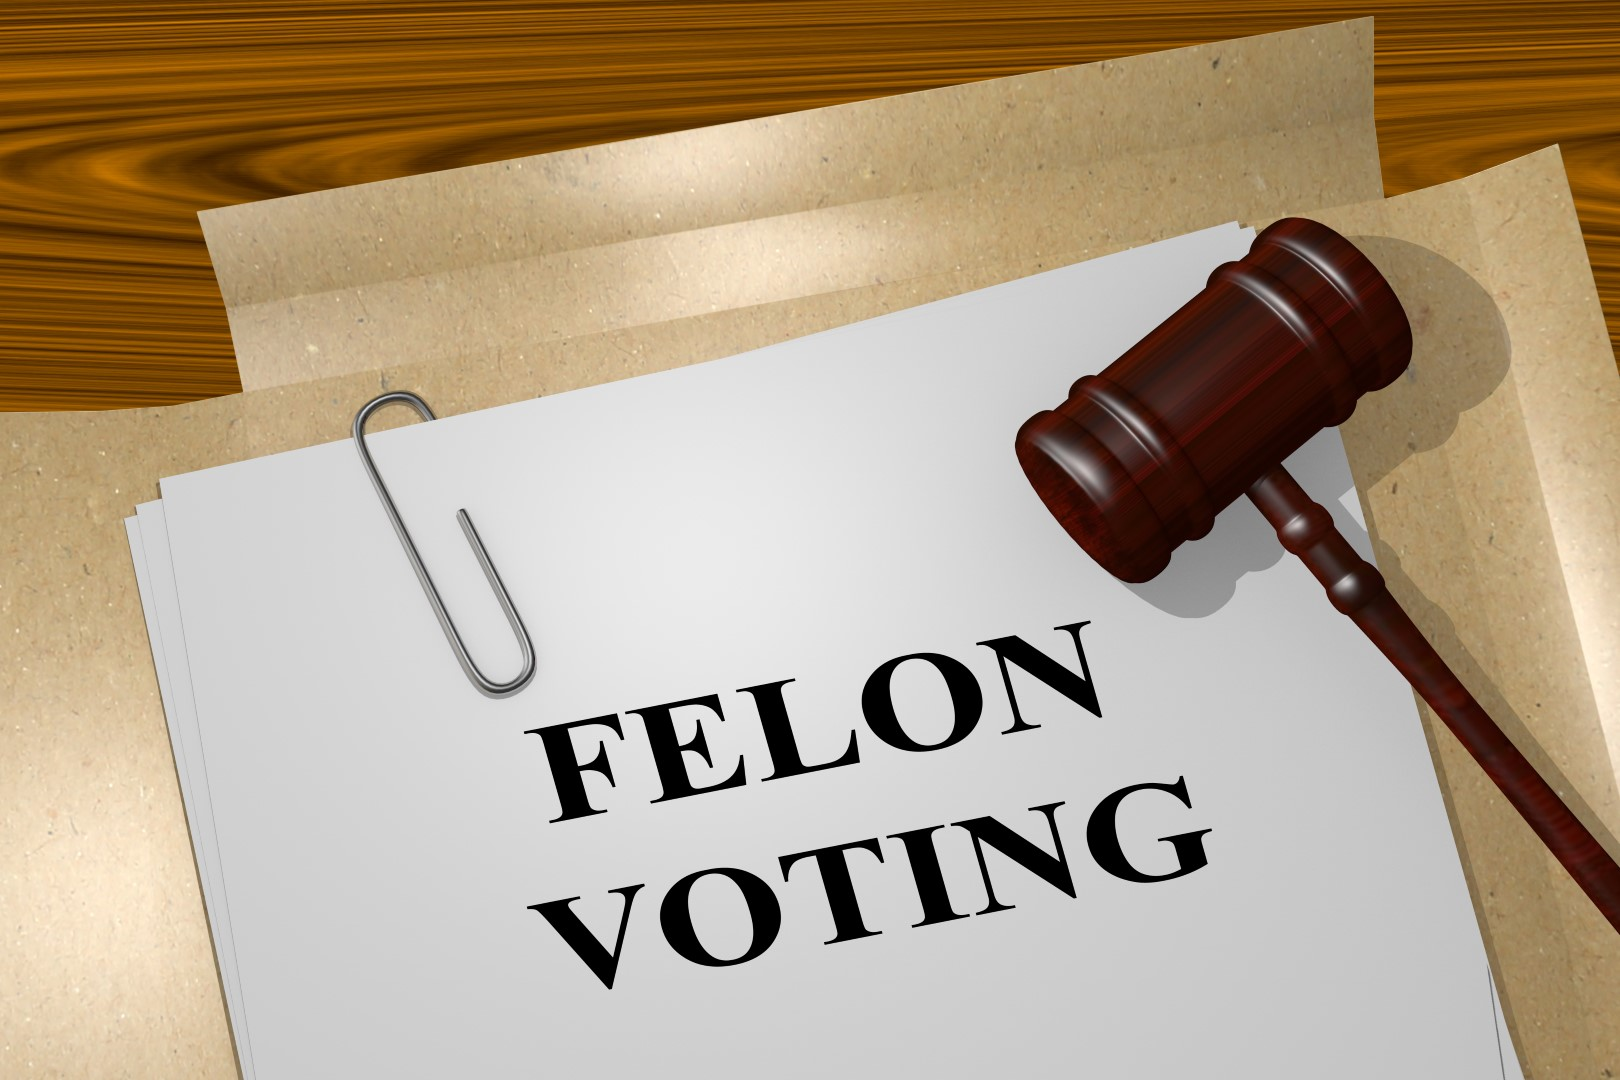 felon-voting-rights-Large.jpg